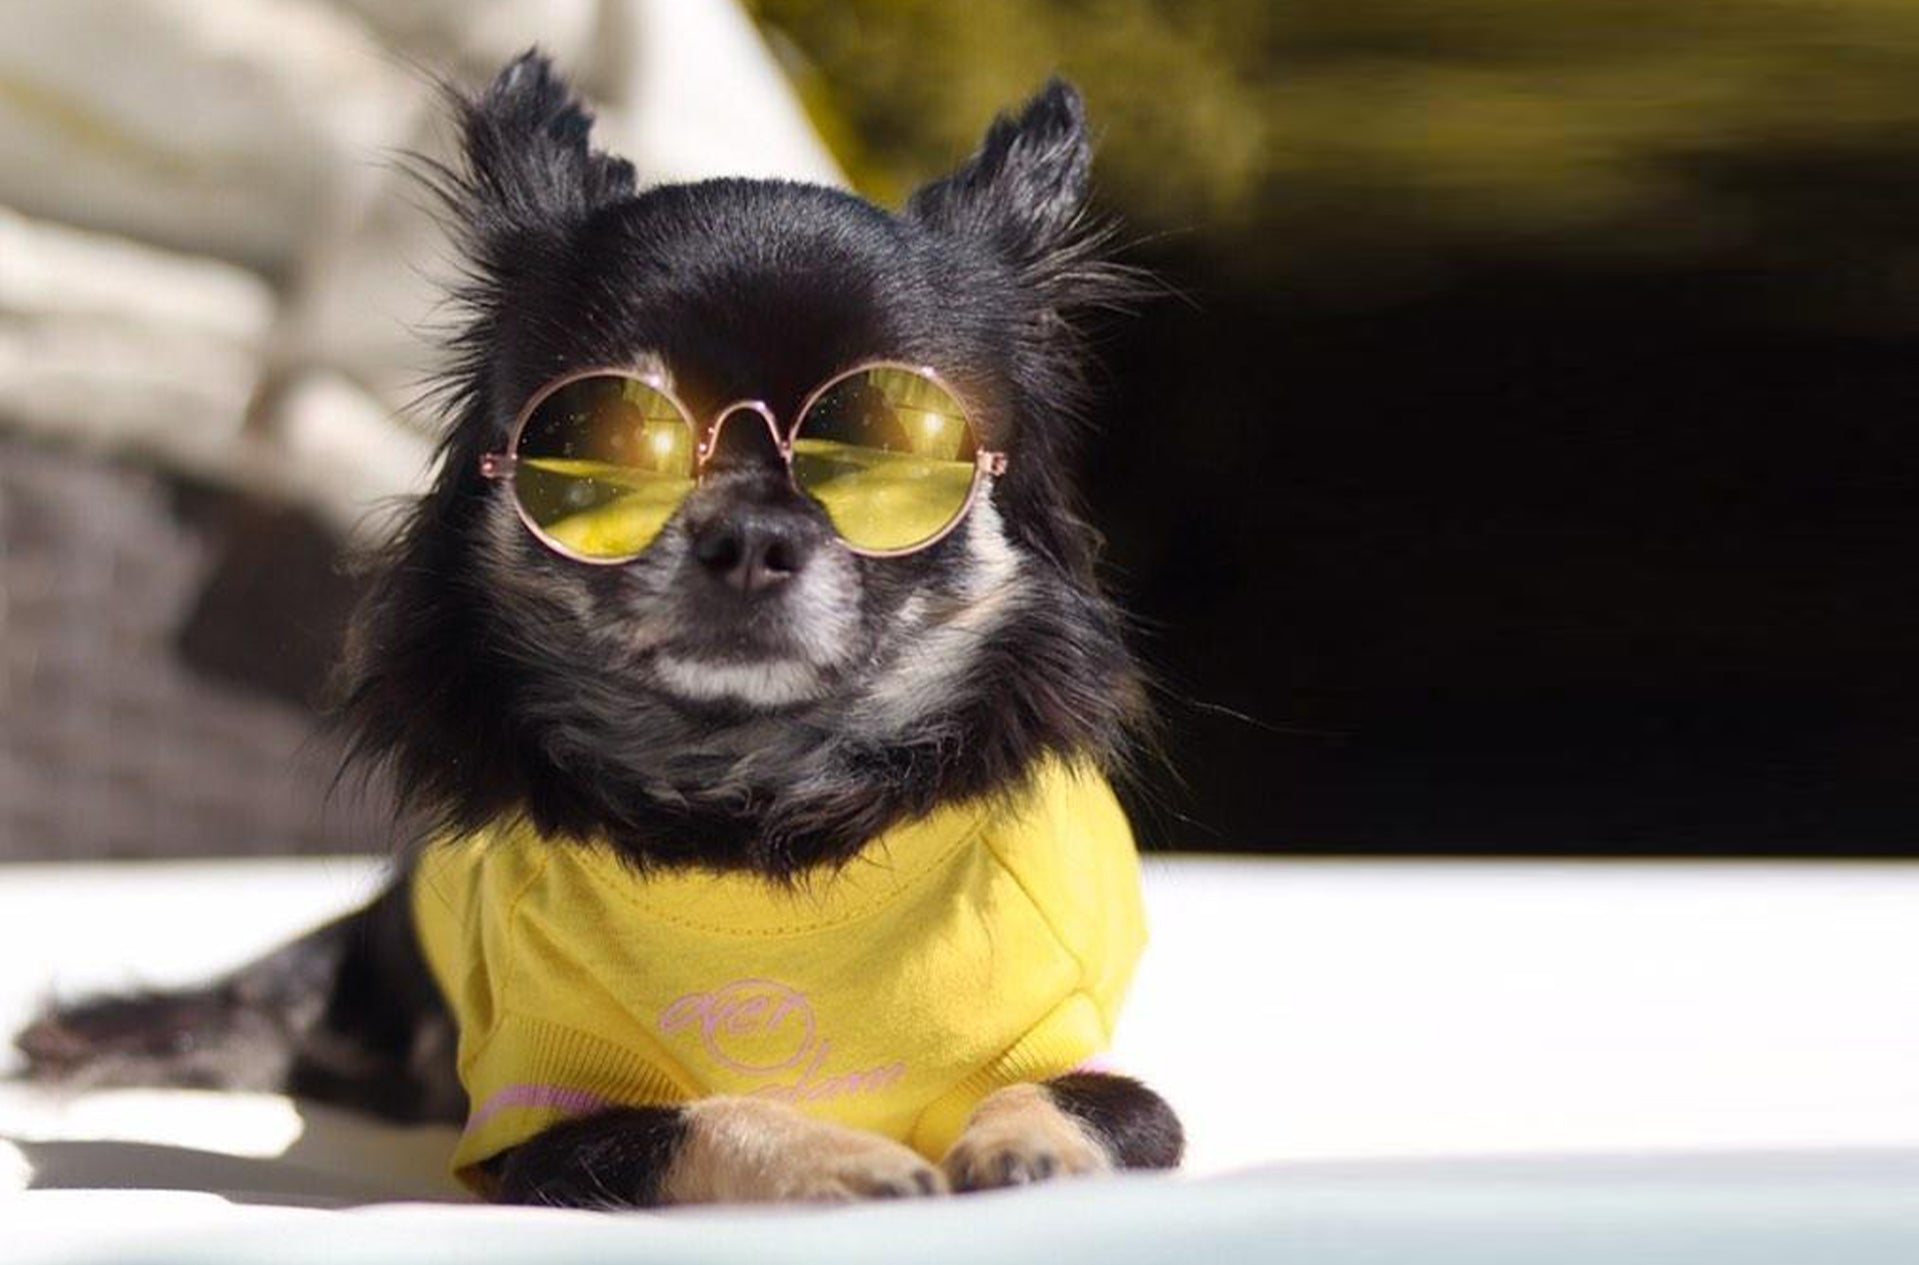 A dog posing outside with an Over Glam t-shirt